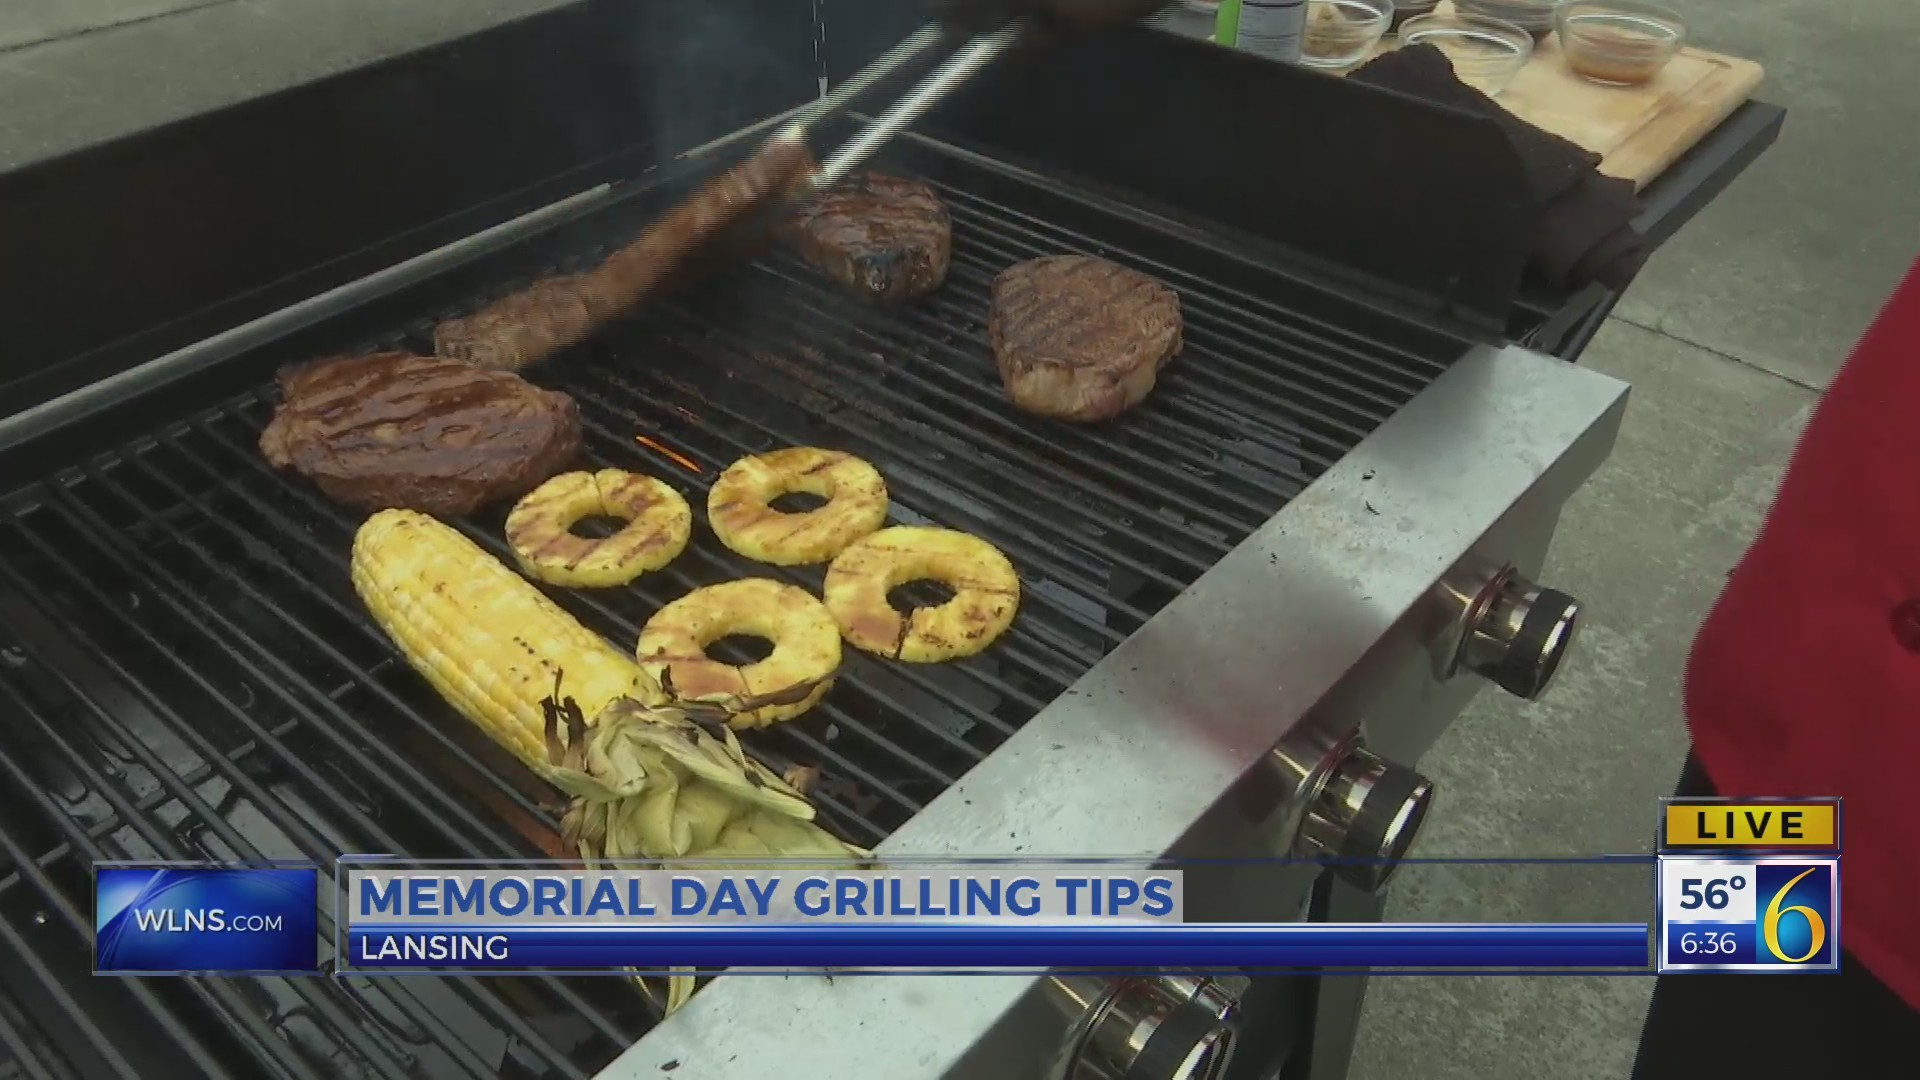 This Morning: Grilling live 2